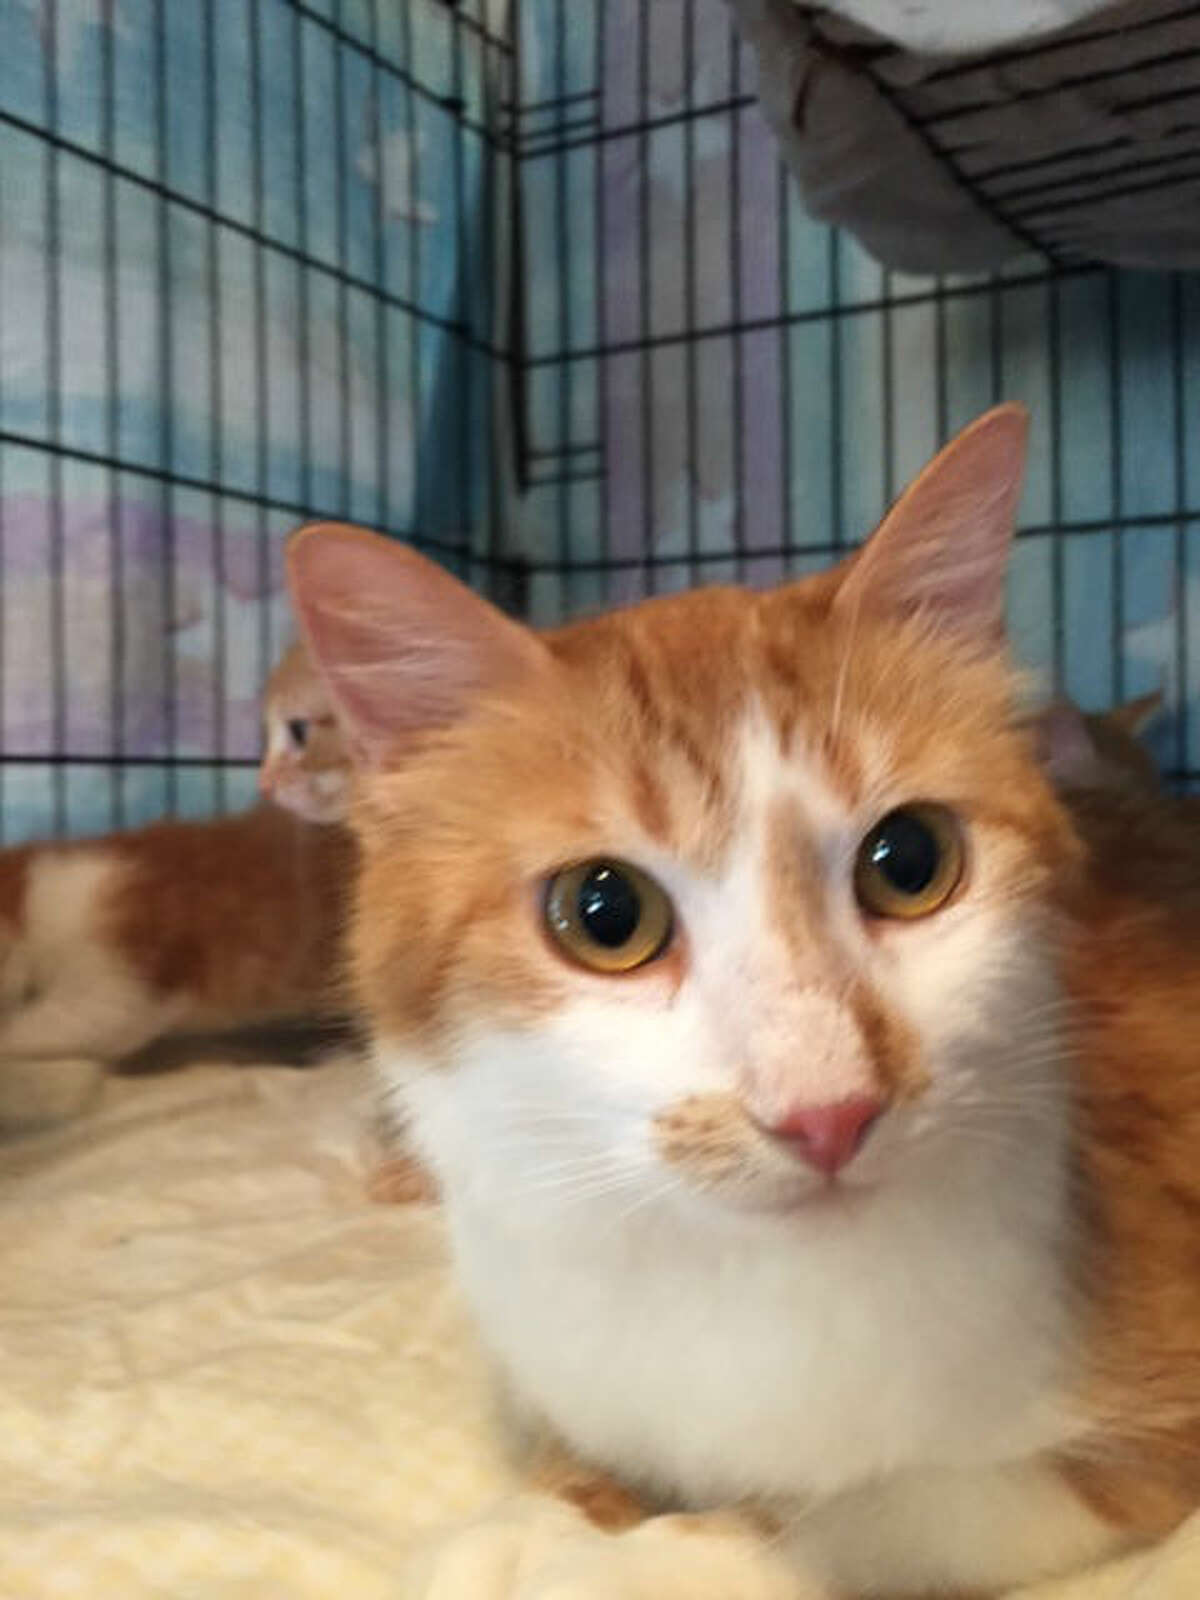 Stowaway cat Frederica and her four kittens arrived in Houston April 2, 2015, and are being cared for by Friends of League City Animal Shelter until they are ready for adoption.